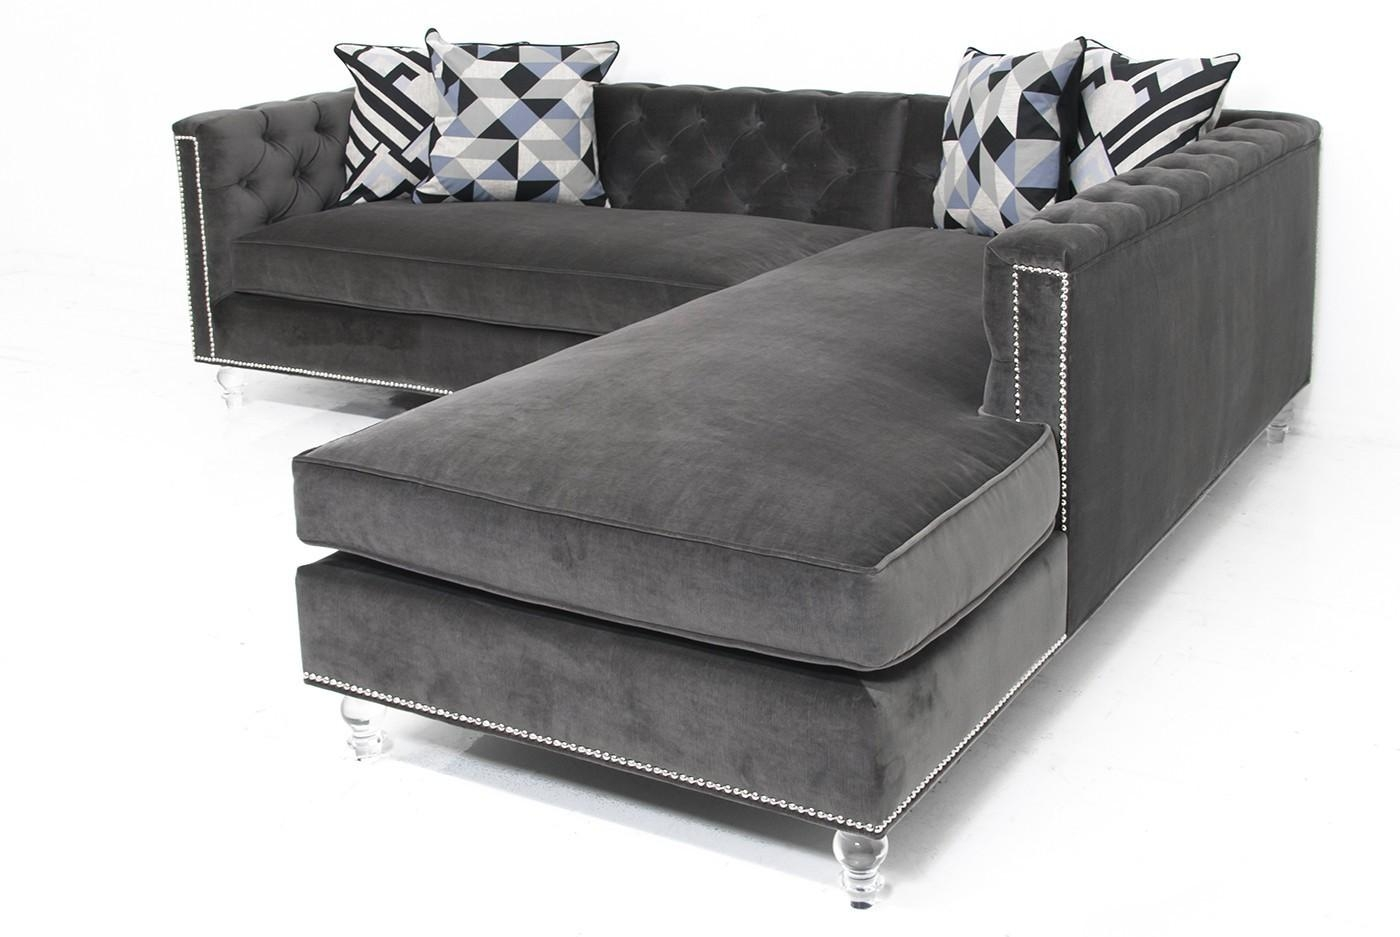 Sofa: Comfort And Style Is Evident In This Dynamic With Tufted With Tufted Sleeper Sofas (Image 12 of 20)